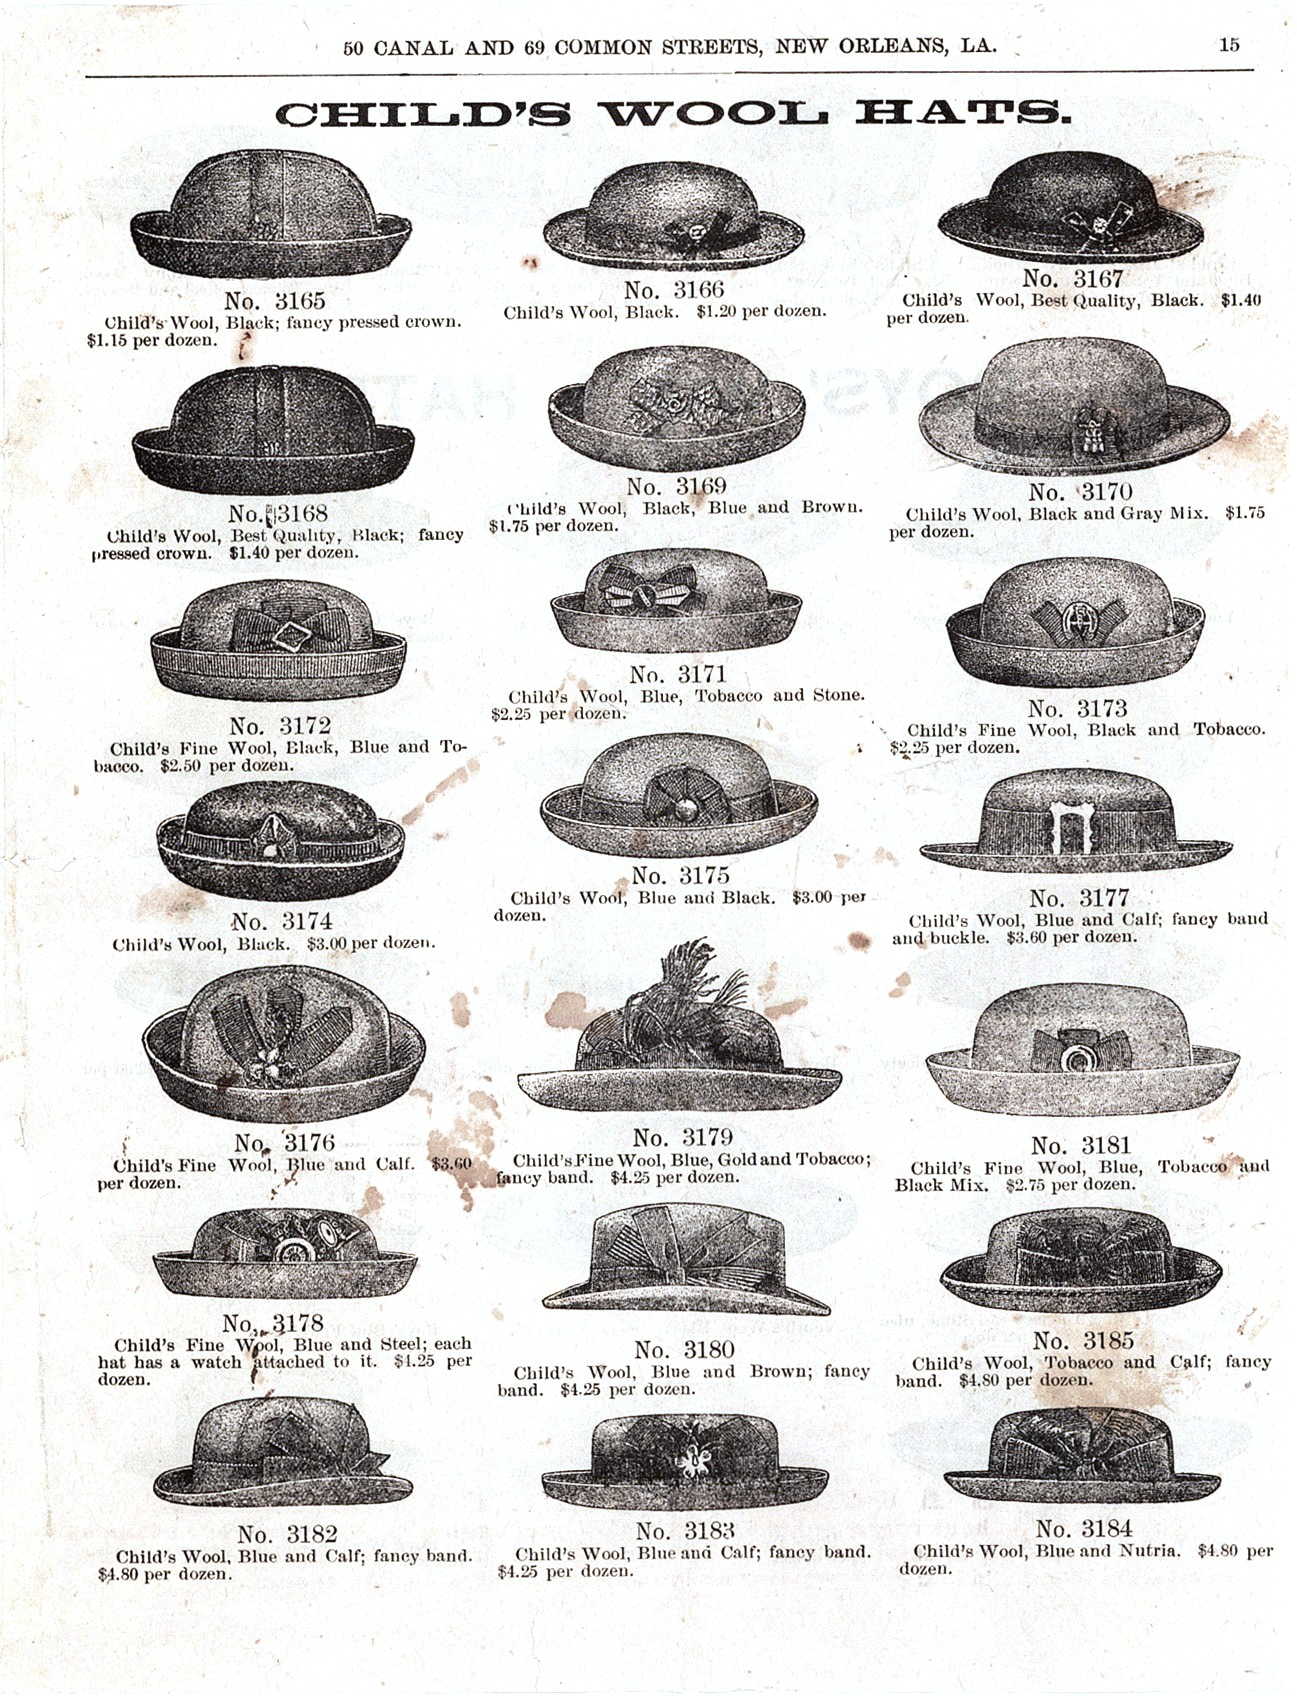 How To Design Hats | Design Apparel Hat Children S Wool Hats Vintage Printable At